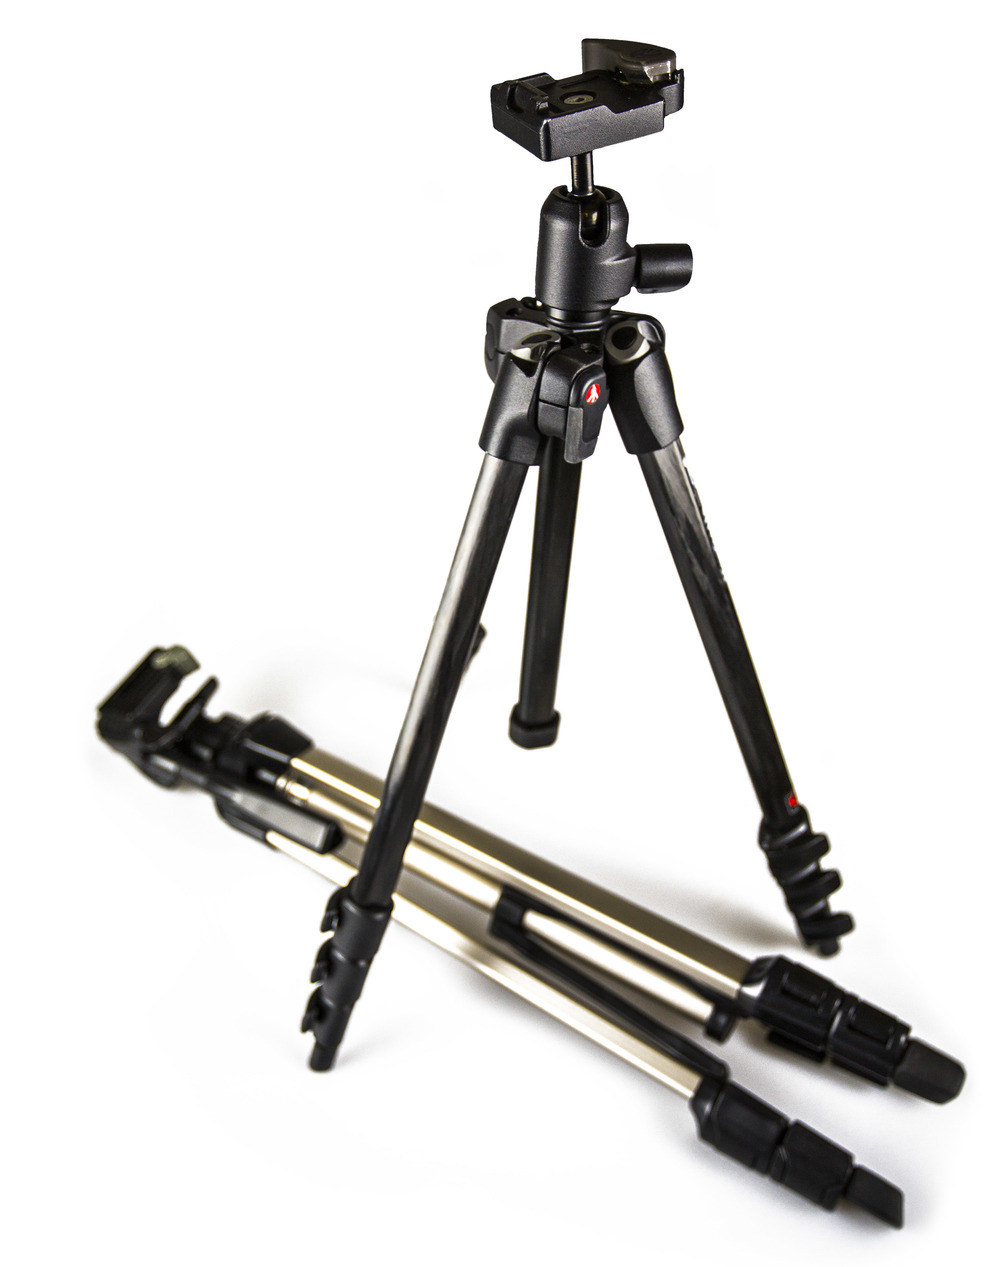 A SOLID TRIPOD: A Manfrotto tripod is a good balance of affordability and excellent build quality. The tripod is made out of carbon fiber and is light and sturdy because of that. A strong tripod helps create sharp images. The tripod laying down in defeat may be affordable, but it's not very useful because of the poor build quality. It'll shake and fail your images when the time comes.